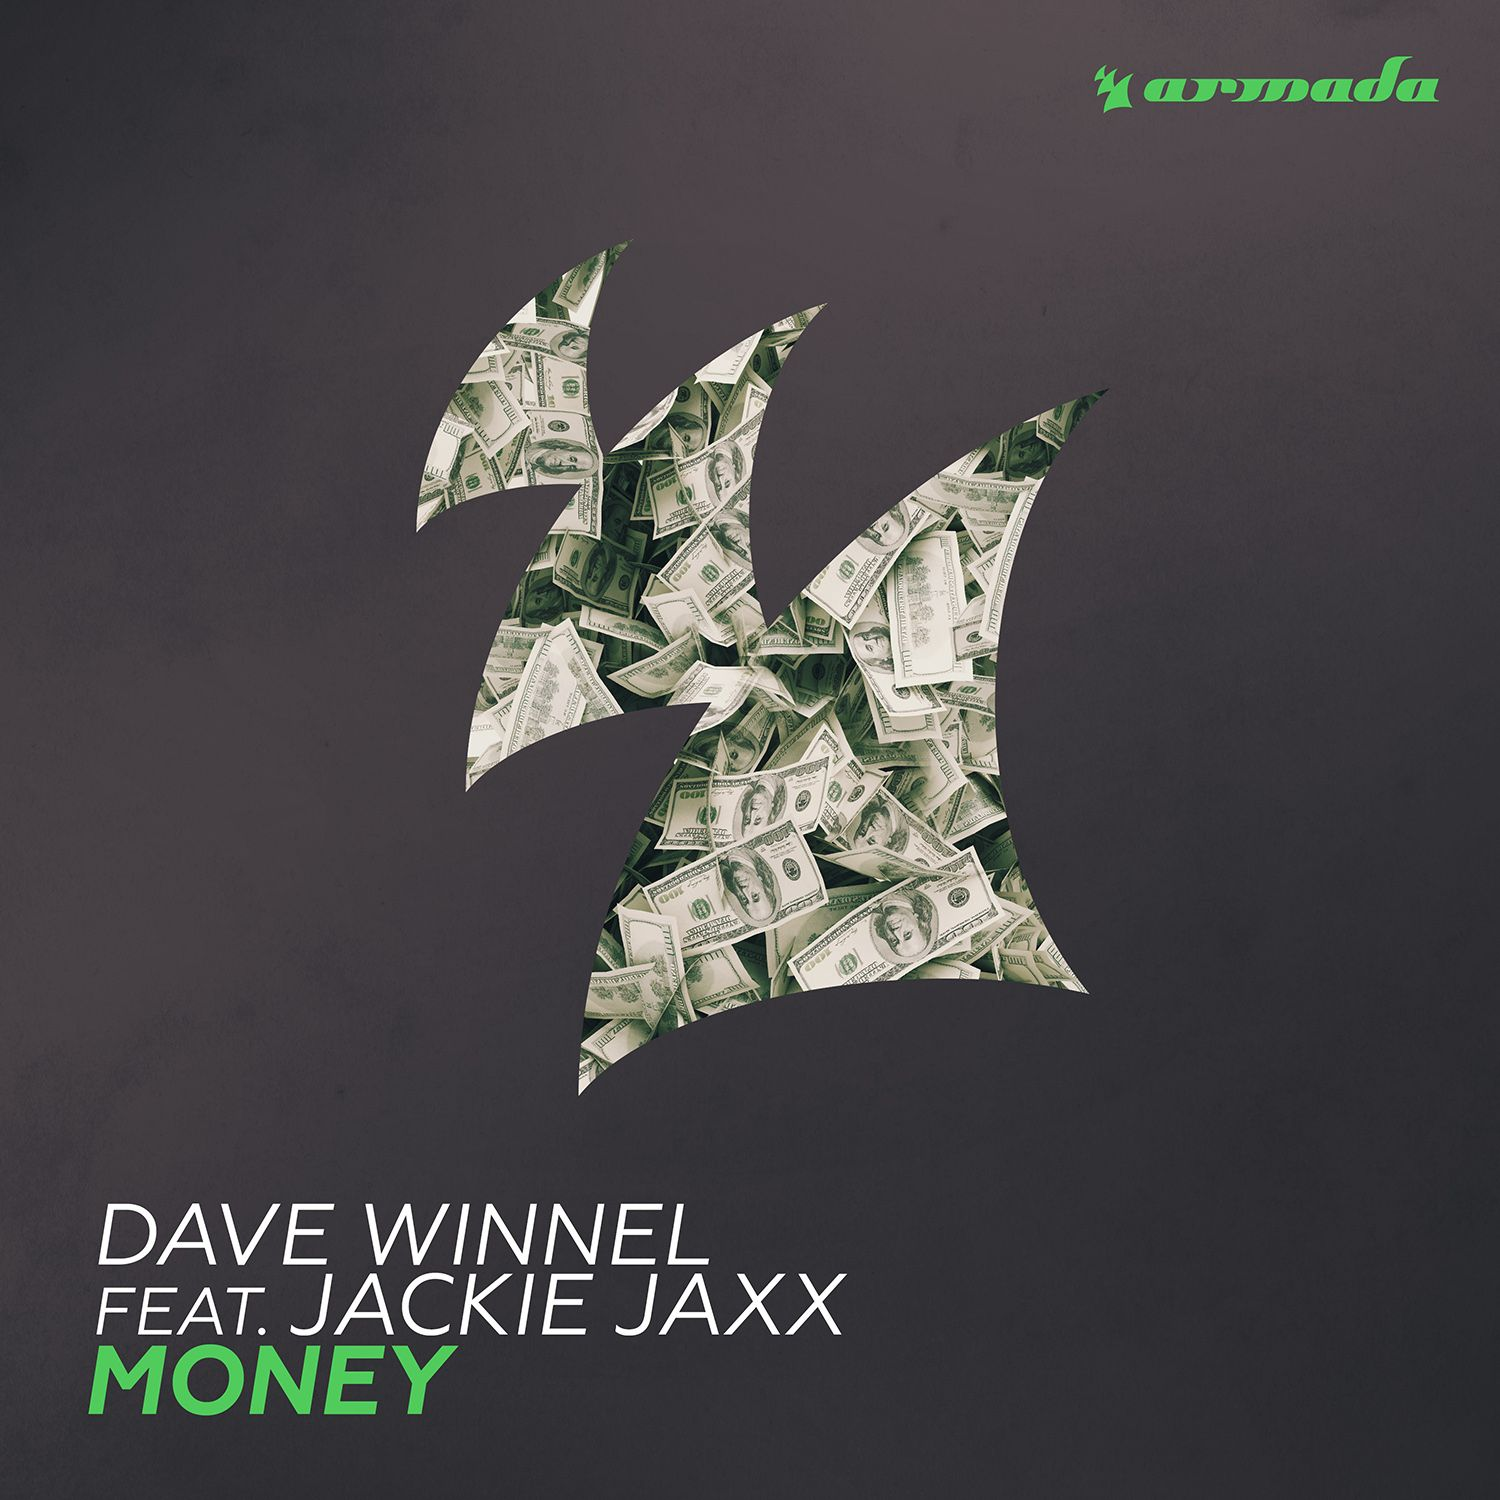 dave_winnel_feat._jackie_jaxx_aeu_money_armada.jpg